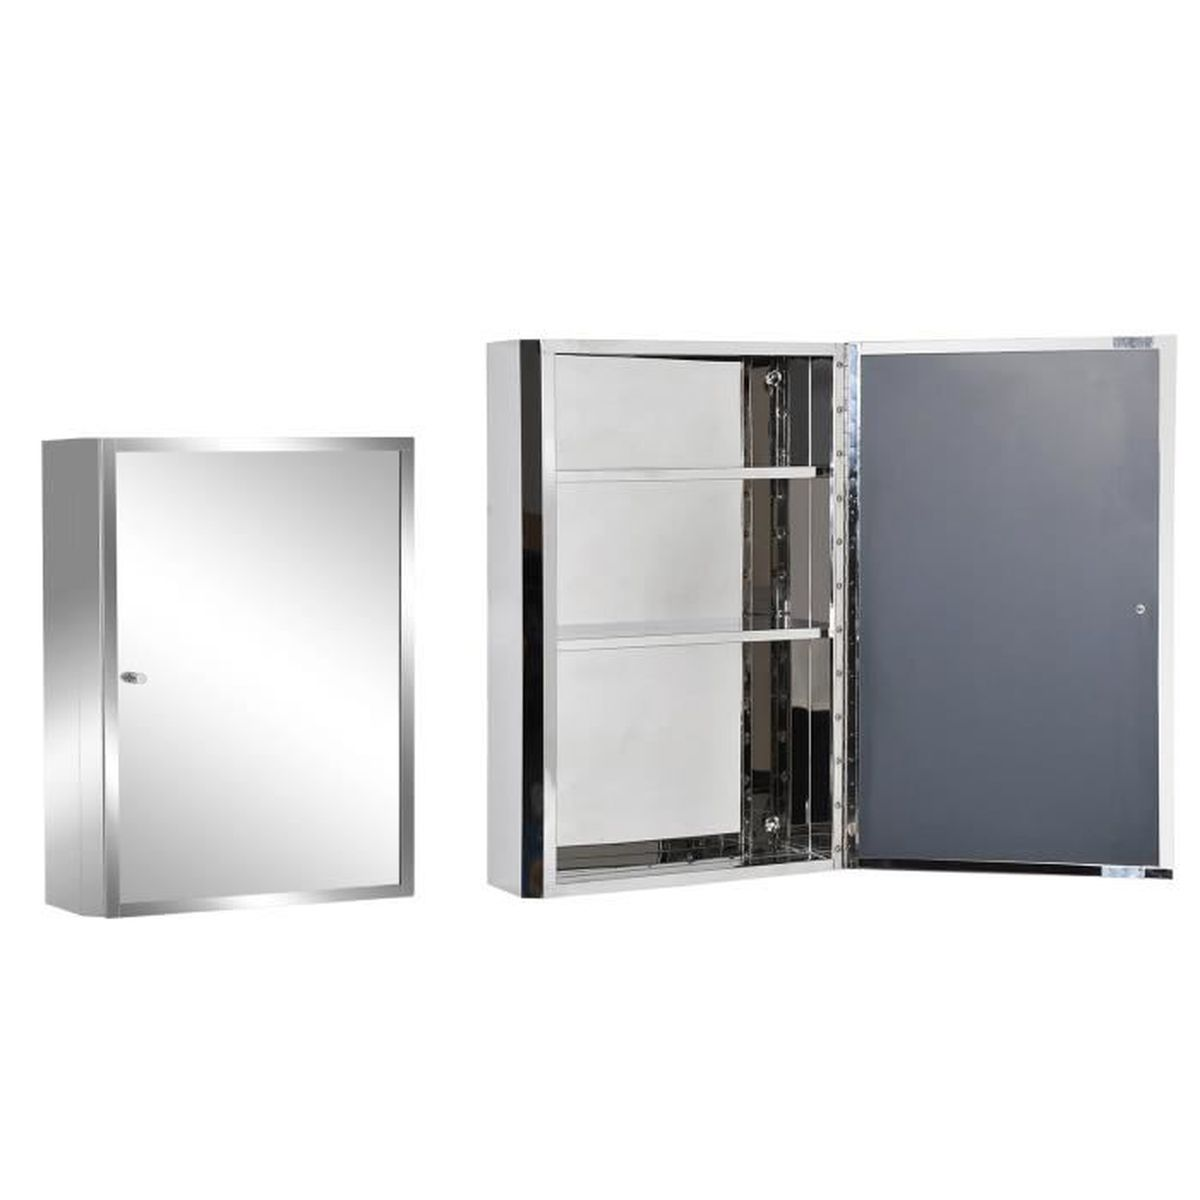 armoire de salle de bain toilette murale miroir avec porte 3 etages acier inox 40l x 13l x. Black Bedroom Furniture Sets. Home Design Ideas